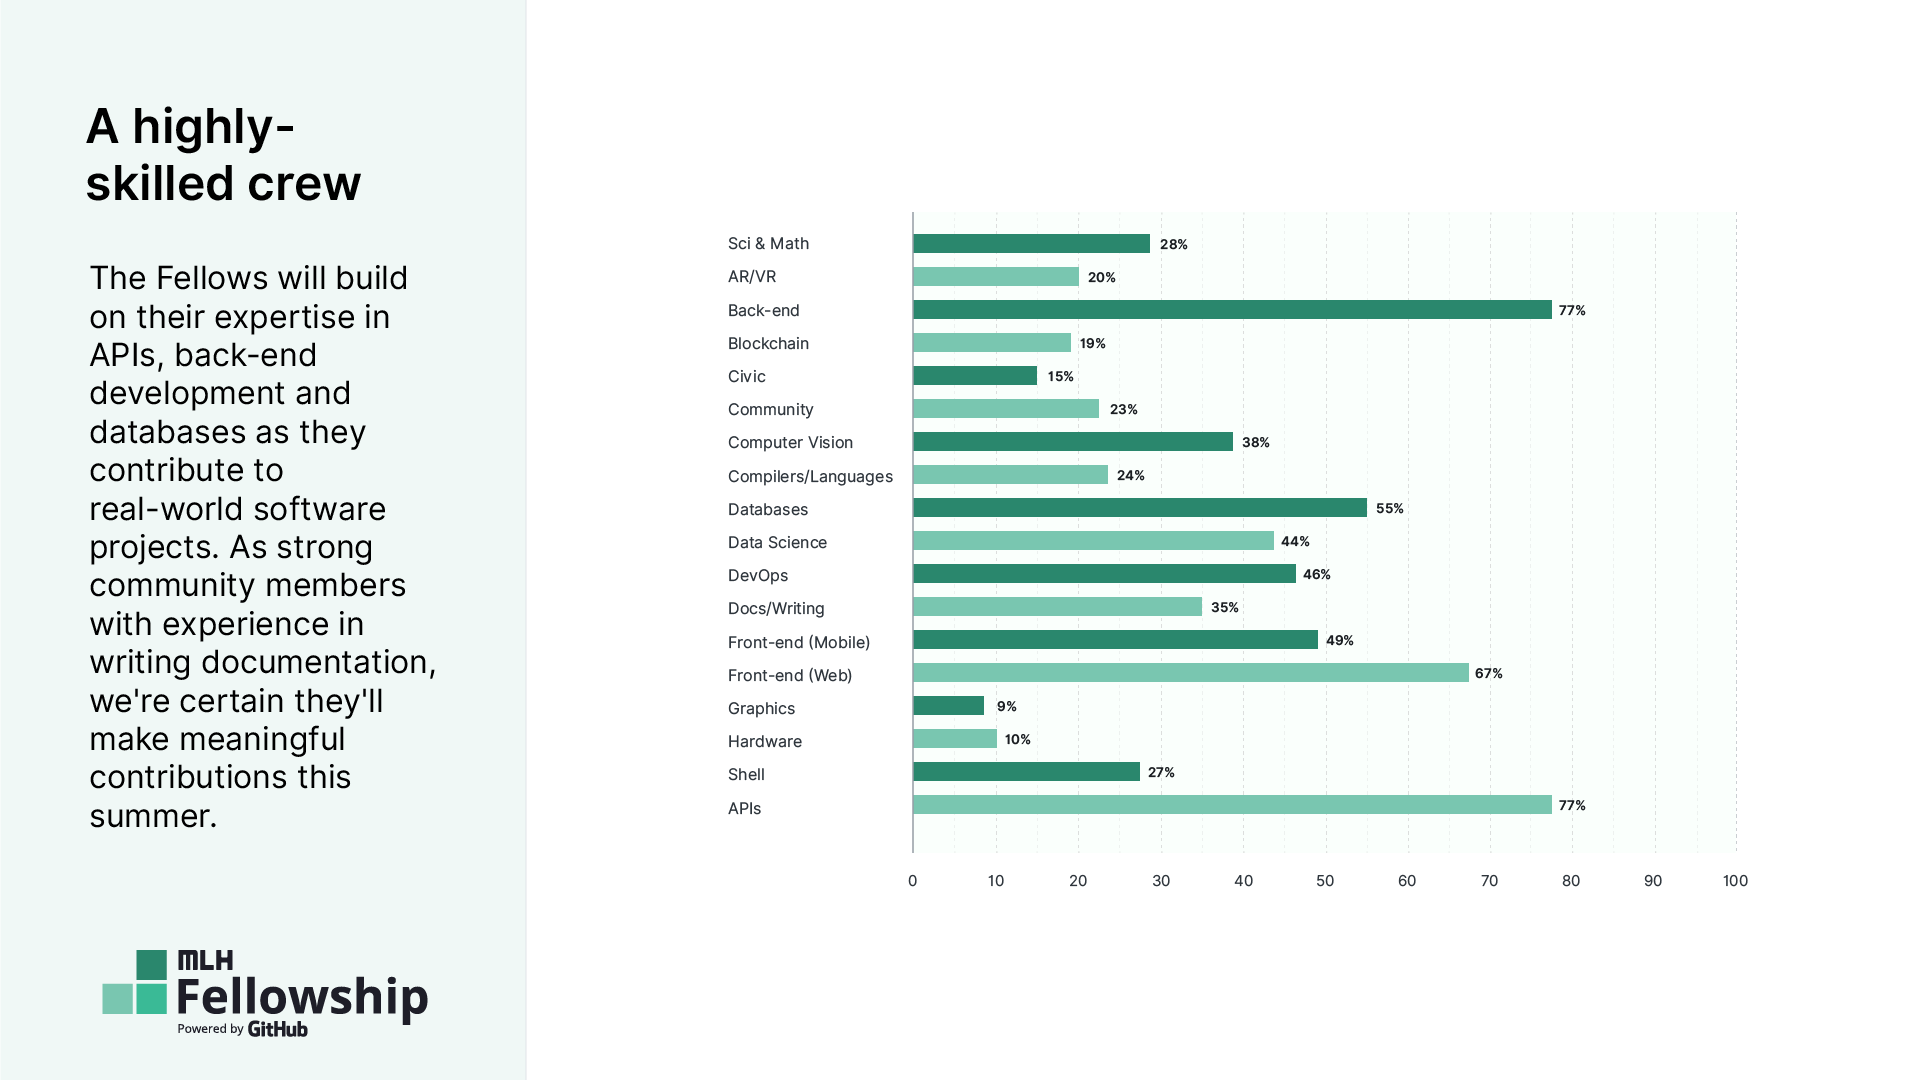 Breakdown of programming languages known by fellows